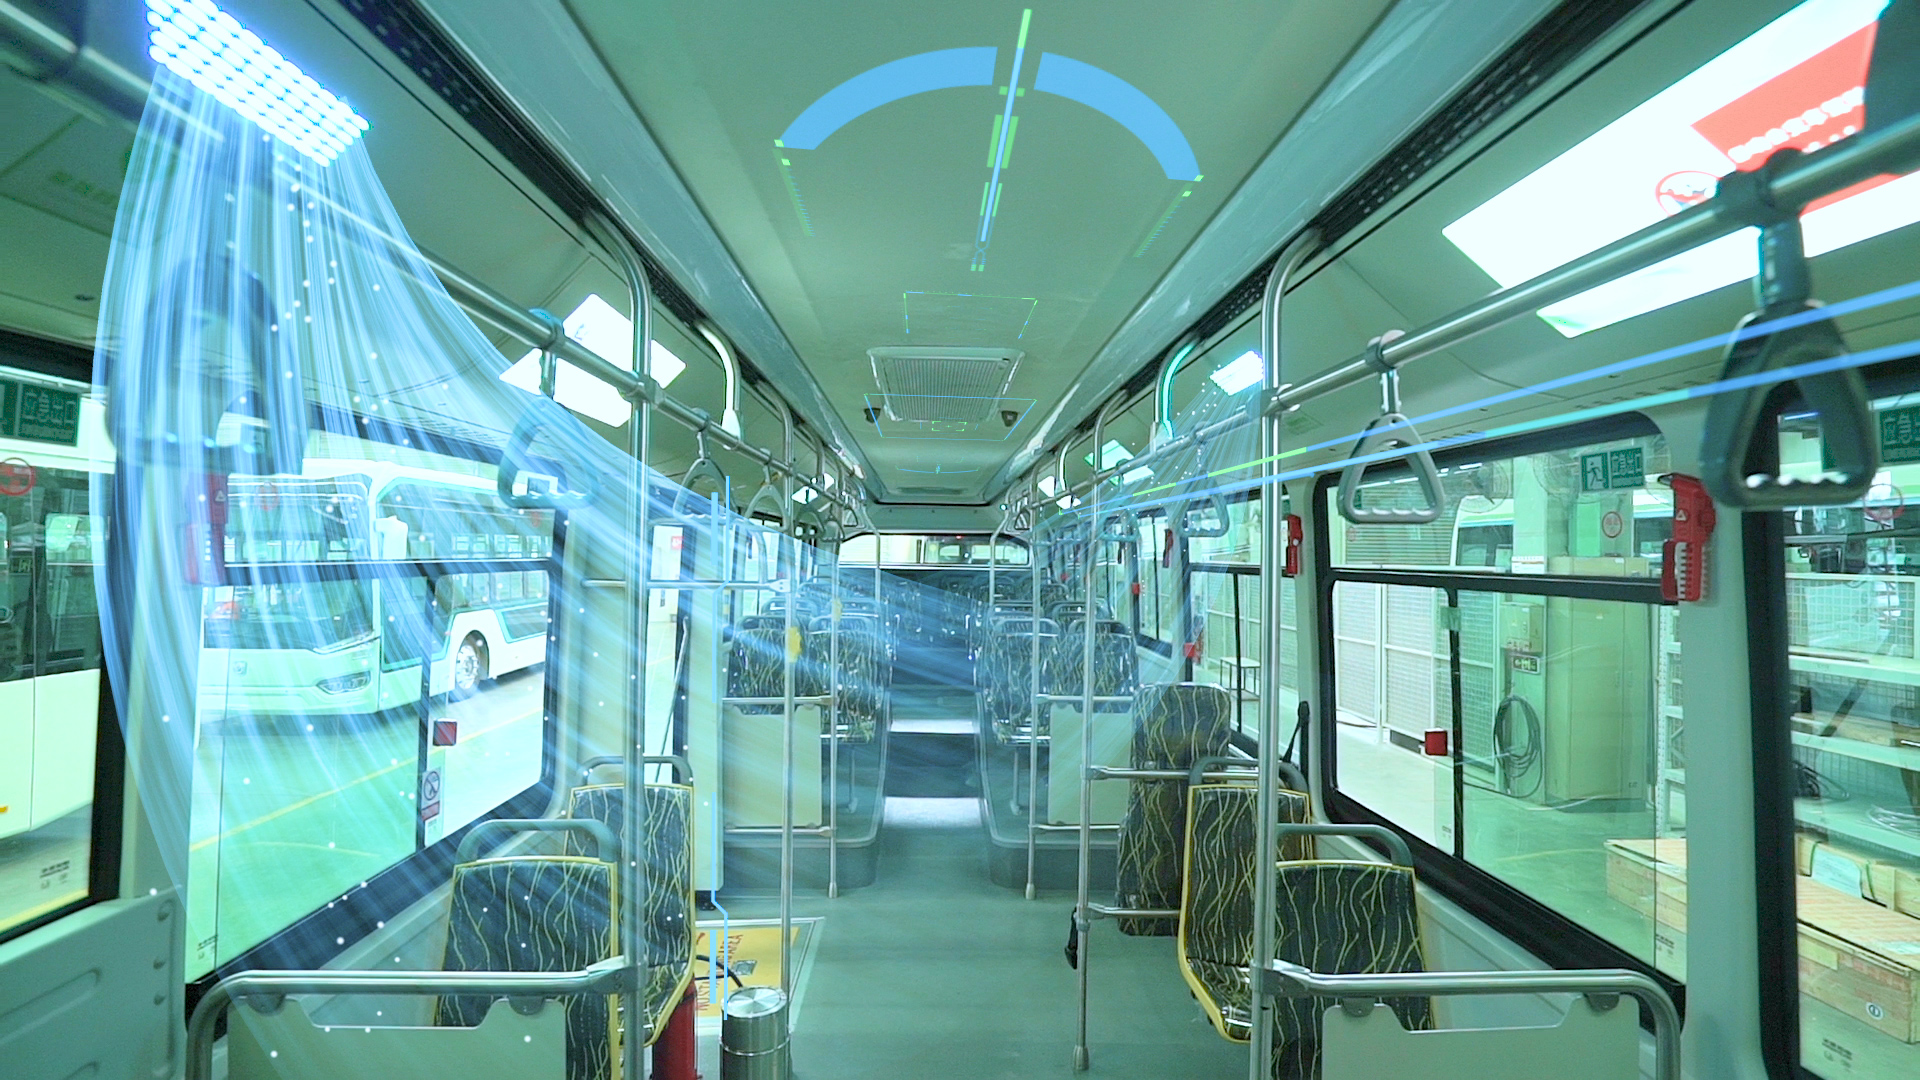 Ultraviolet light can be delivered out to the whole area of drivers and passengers, effectively achieving a complete sterilization and purification of the environment inside SUNWIN bus.